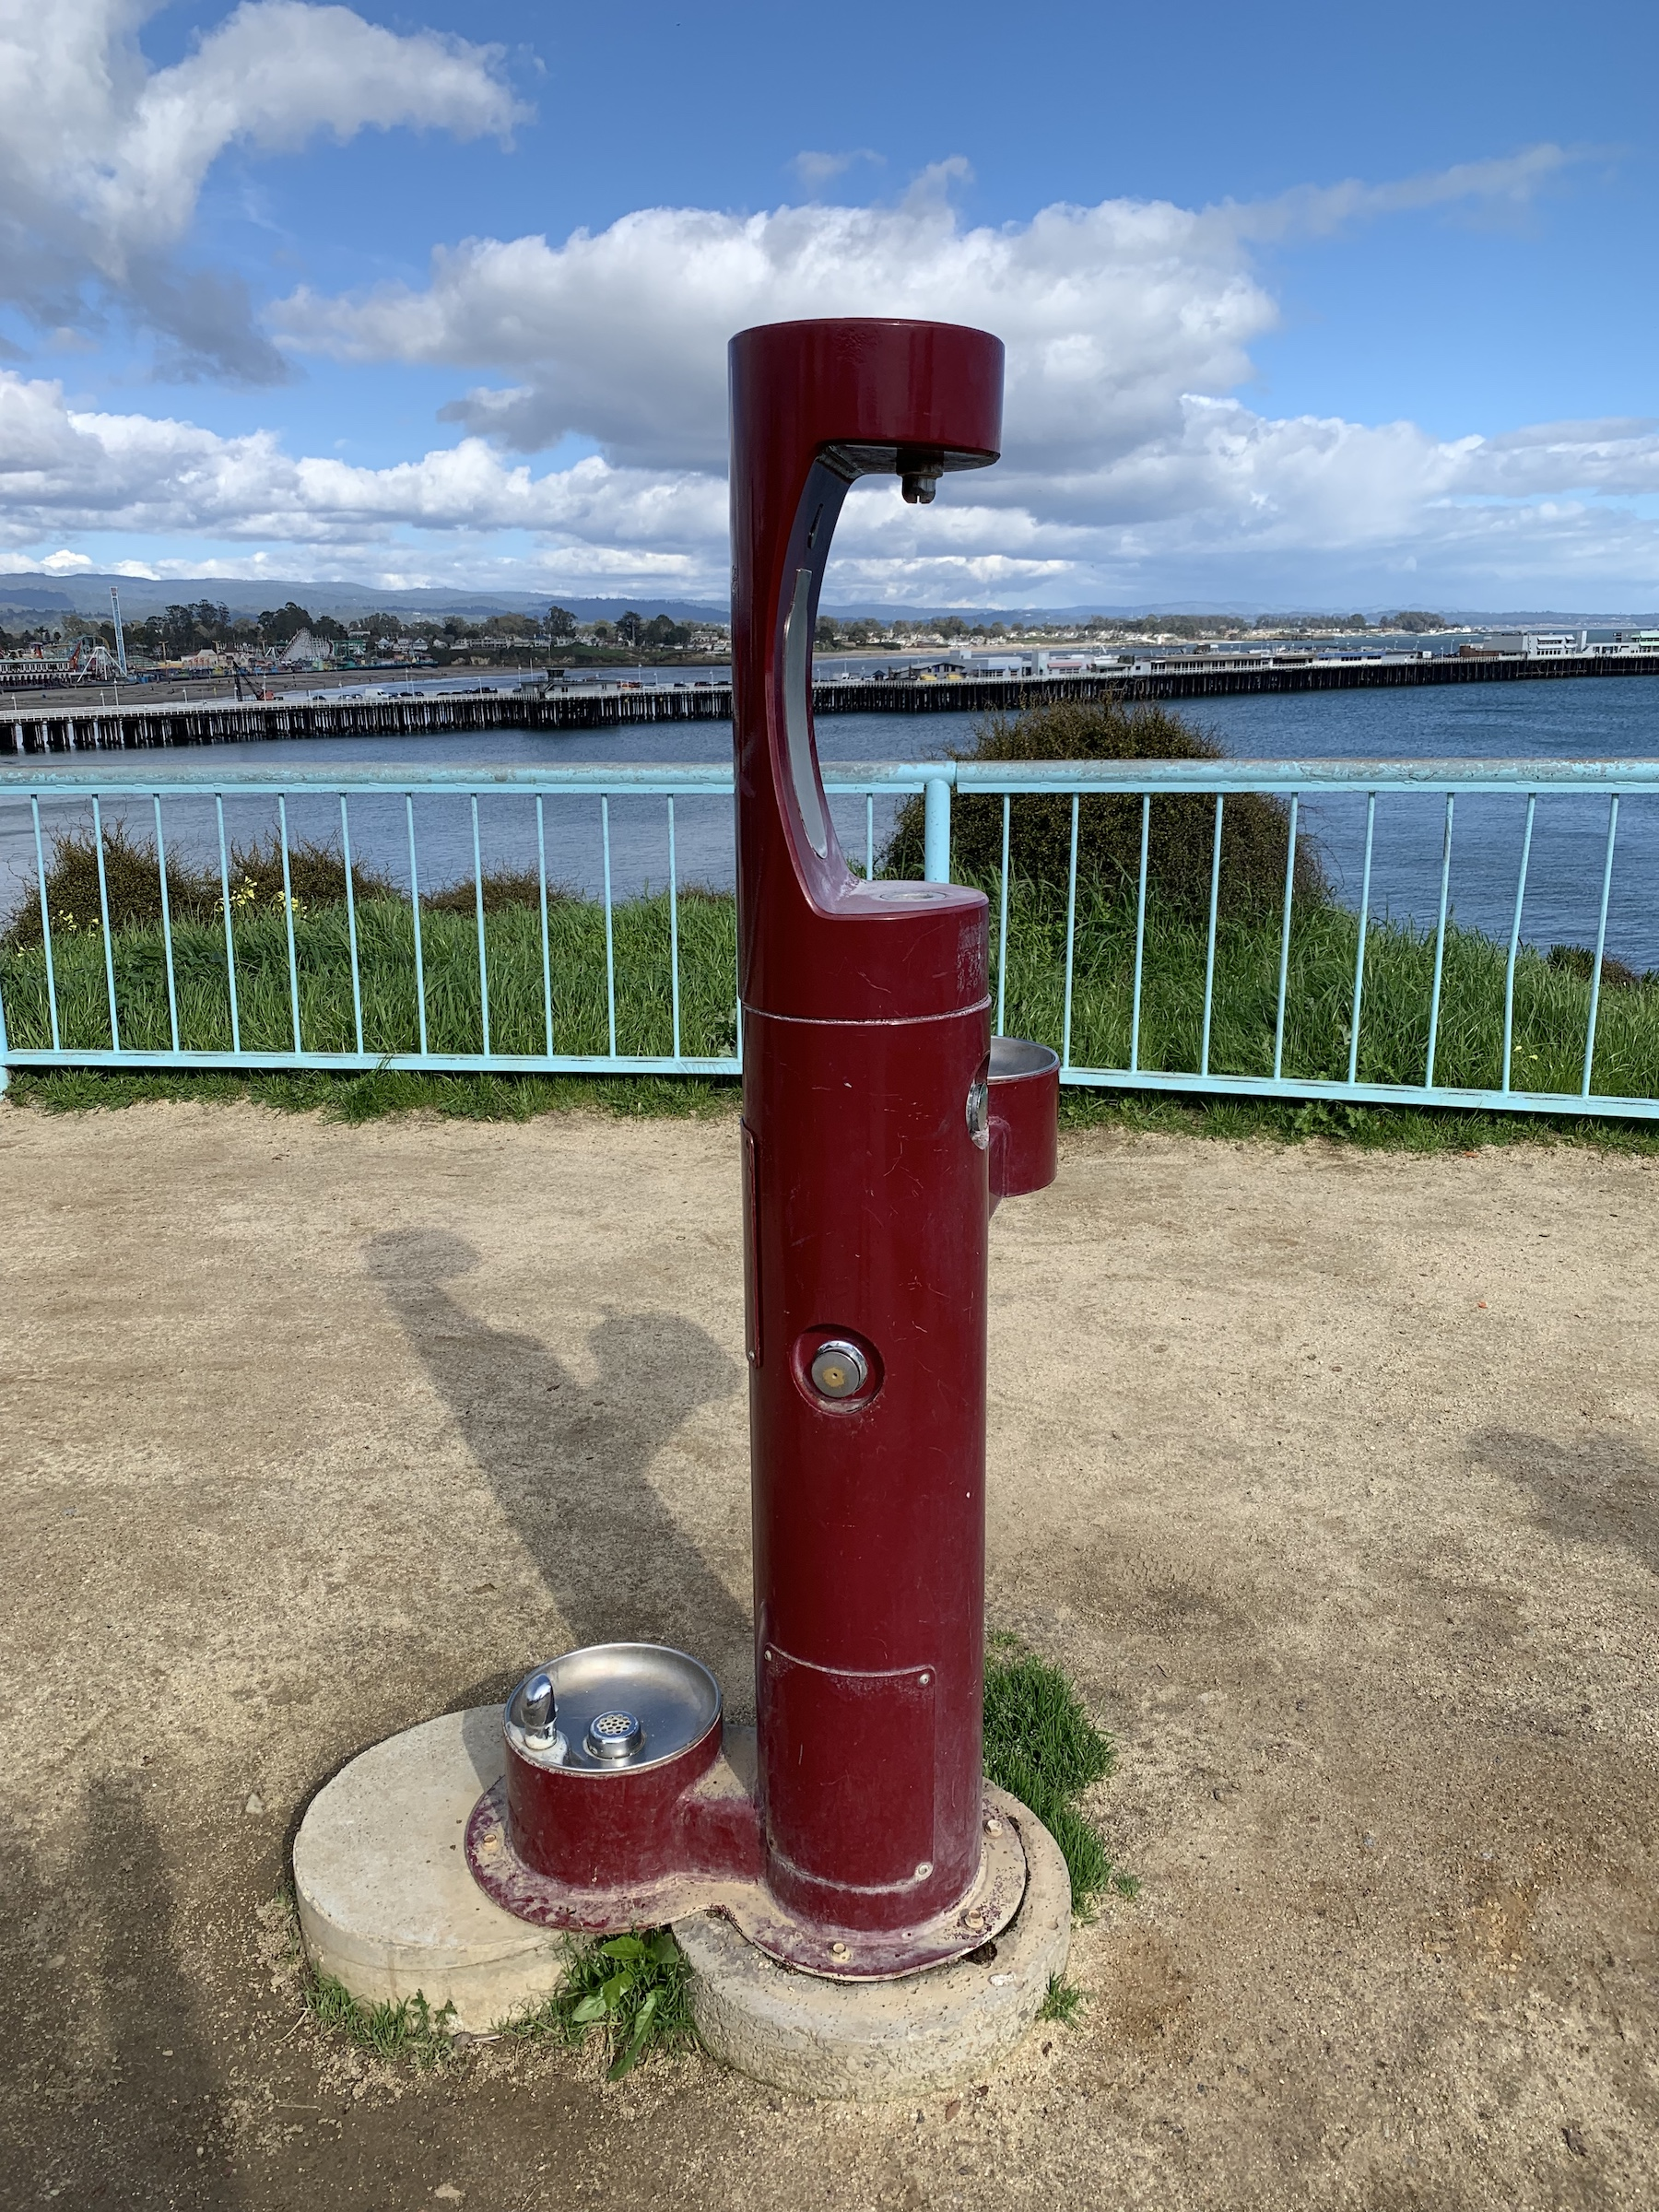 water fountain with bottle filling station on cliffs overlooking ocean